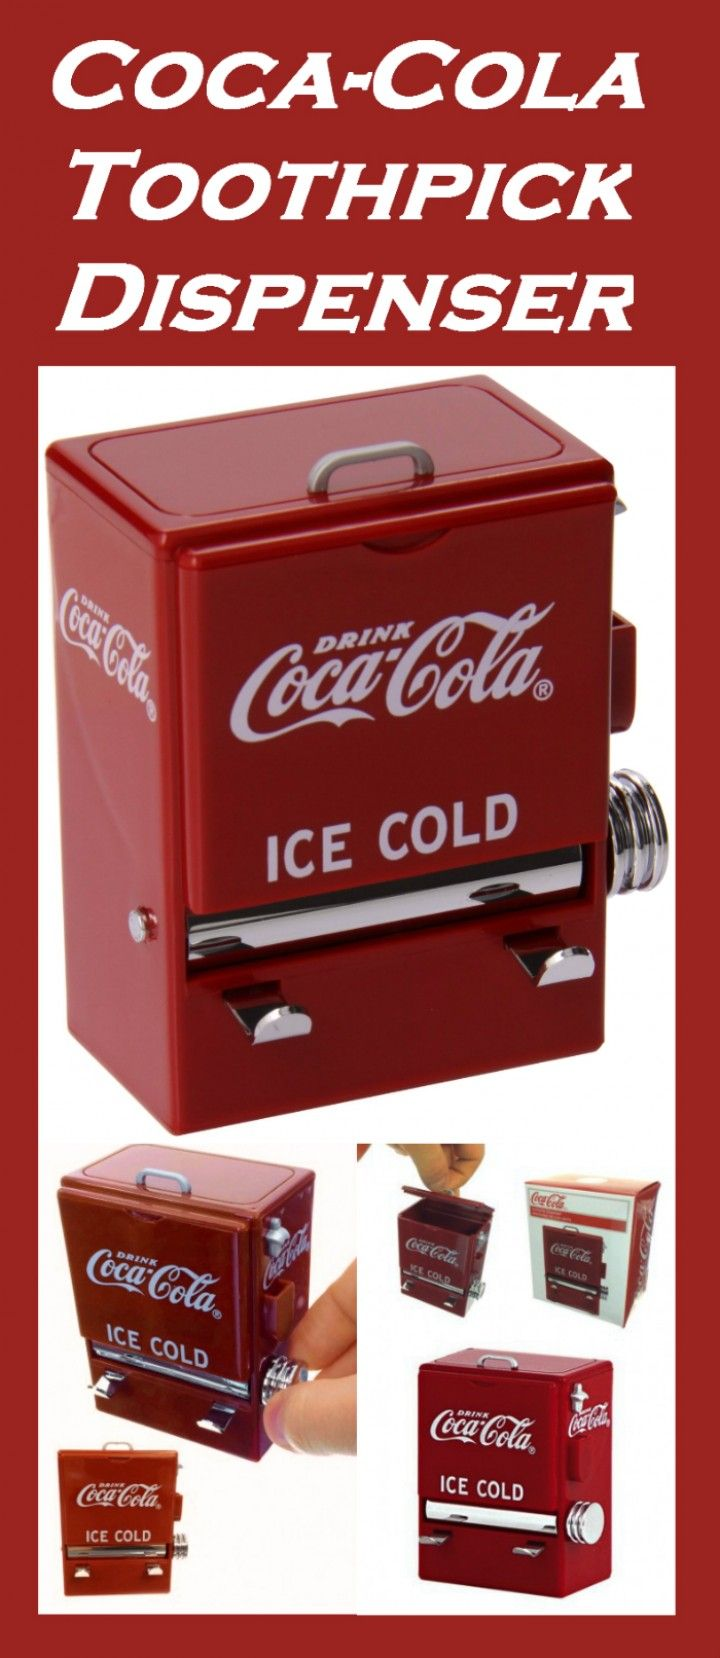 Coca-Cola Toothpick Dispenser holds 200 toothpicks!  #coca_cola #cola #mini  #cute #retro #vintage #old_fashioned #miniature  #red #logo #color #red_accessories #gadgets #Cocacola #Toothpick #Dispenser  #cola #soda #toothpicks #organizer #home #home_decor #kitchen #50s_style #50s #cute #gifts #retro #gift #nostalgia #rockabilly #gift_for_him #kitchen_gifts #cute_accessories #cute_gadgets #retro_accessories #sweet #gift_for_her #colors #red #kitchen_gadgets #colorful #gadgets #accessories